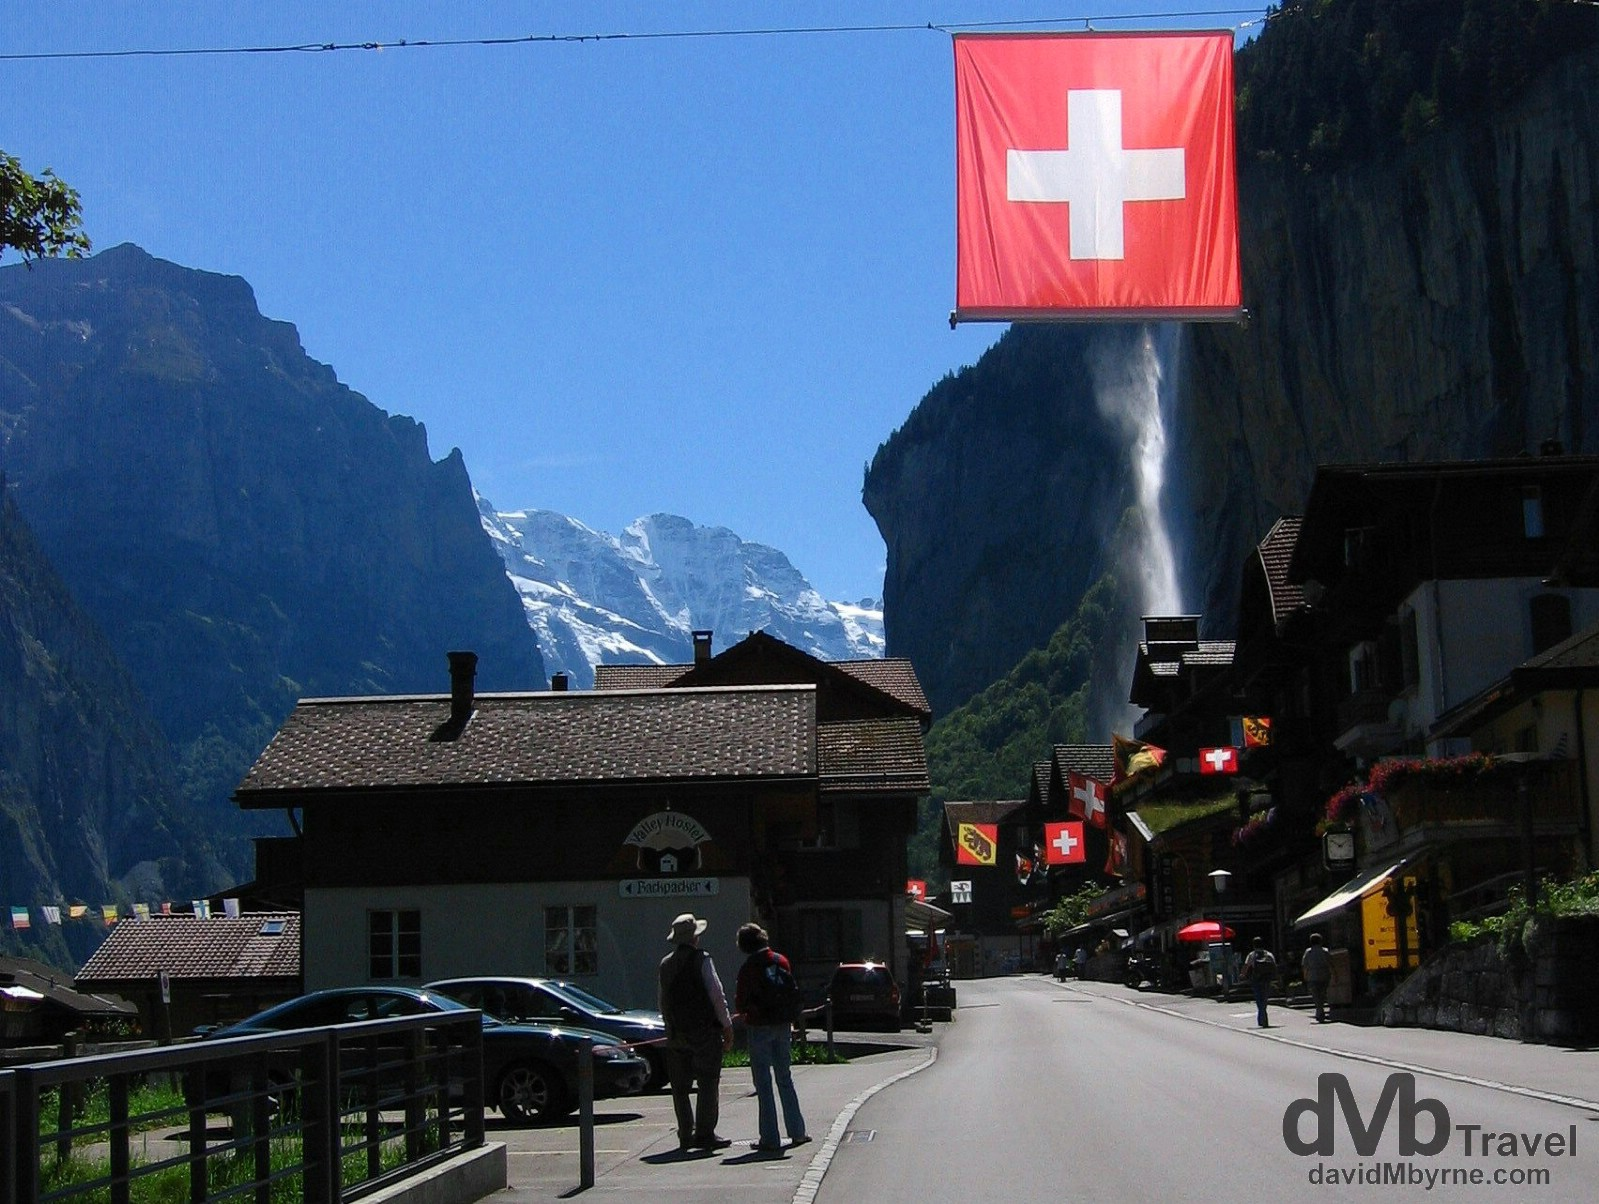 Entering the village of Lauterbrunnen, Jungfrau region, Switzerland. August 24th, 2007.